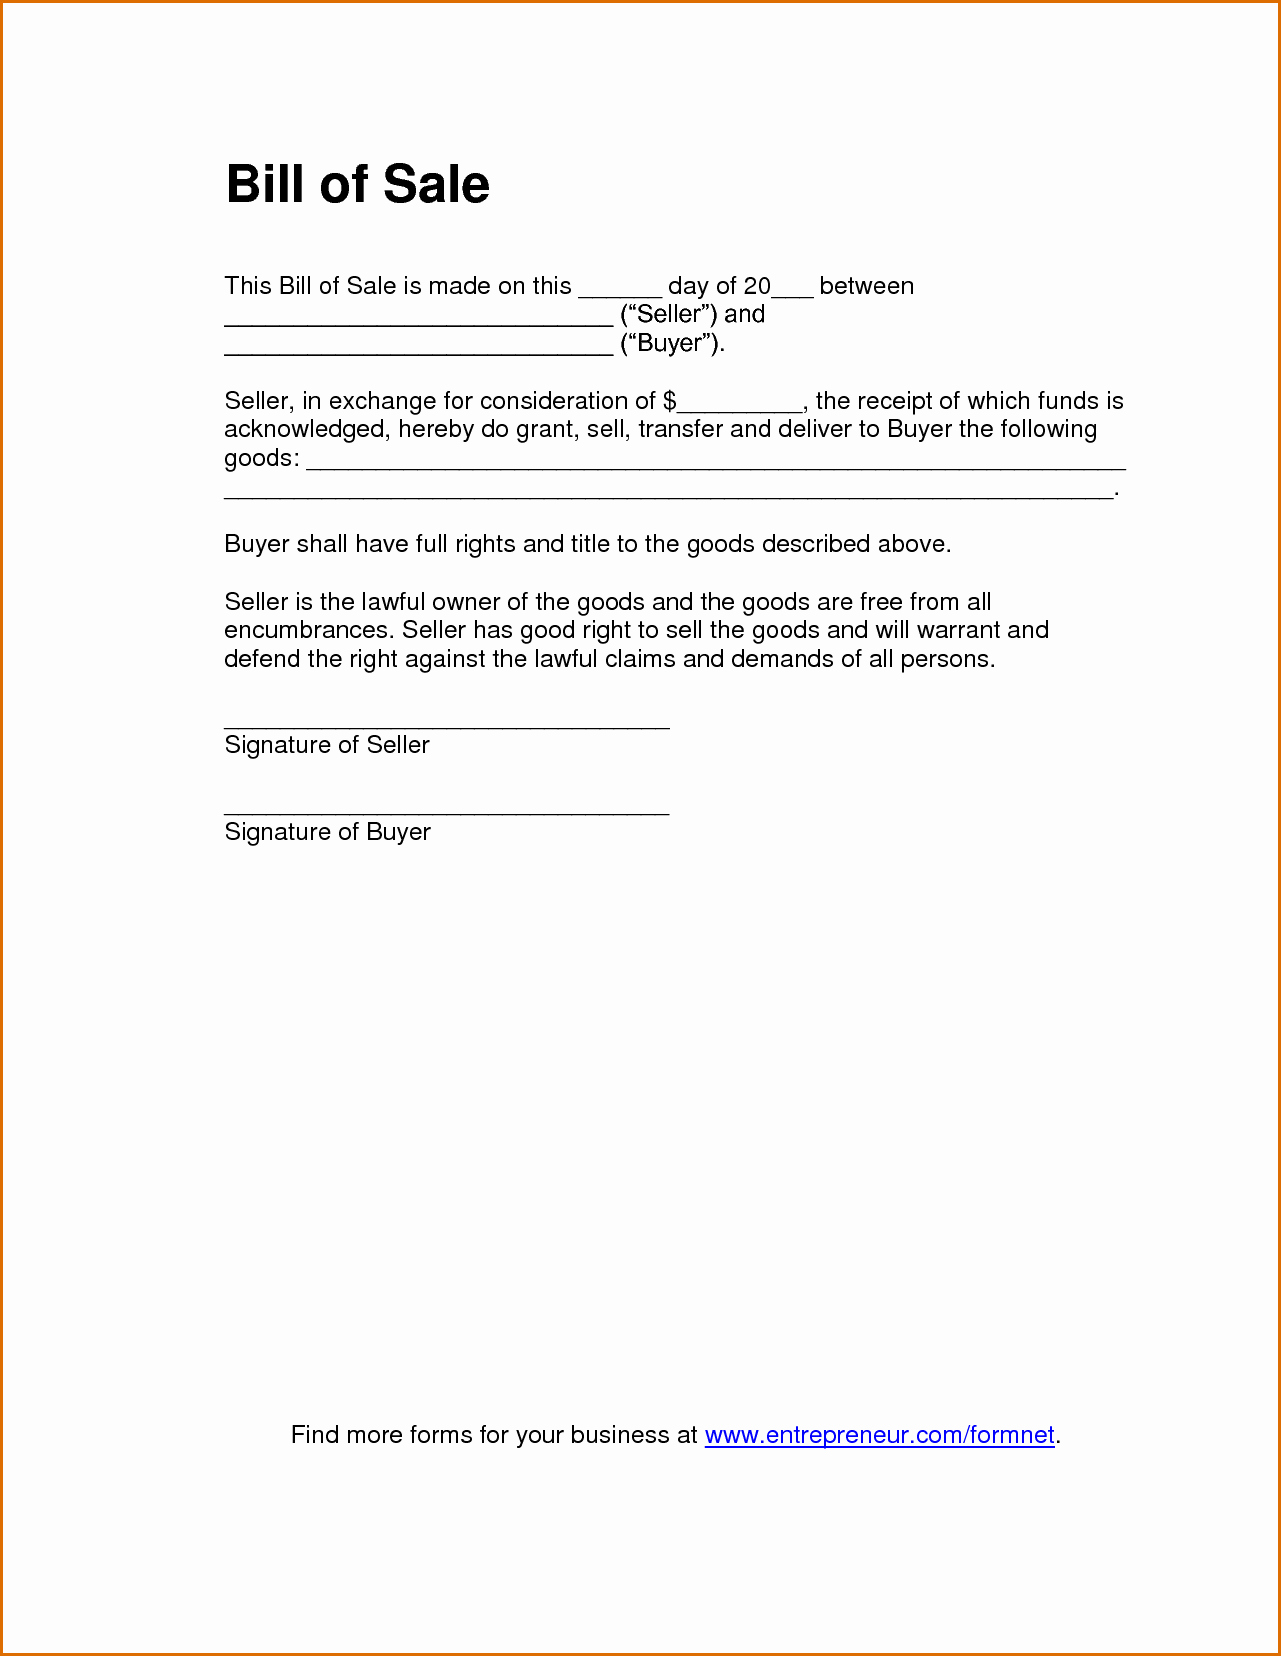 Bill Of Sale Template Download New Bill Sale Word Template Invoice Design Inspiration